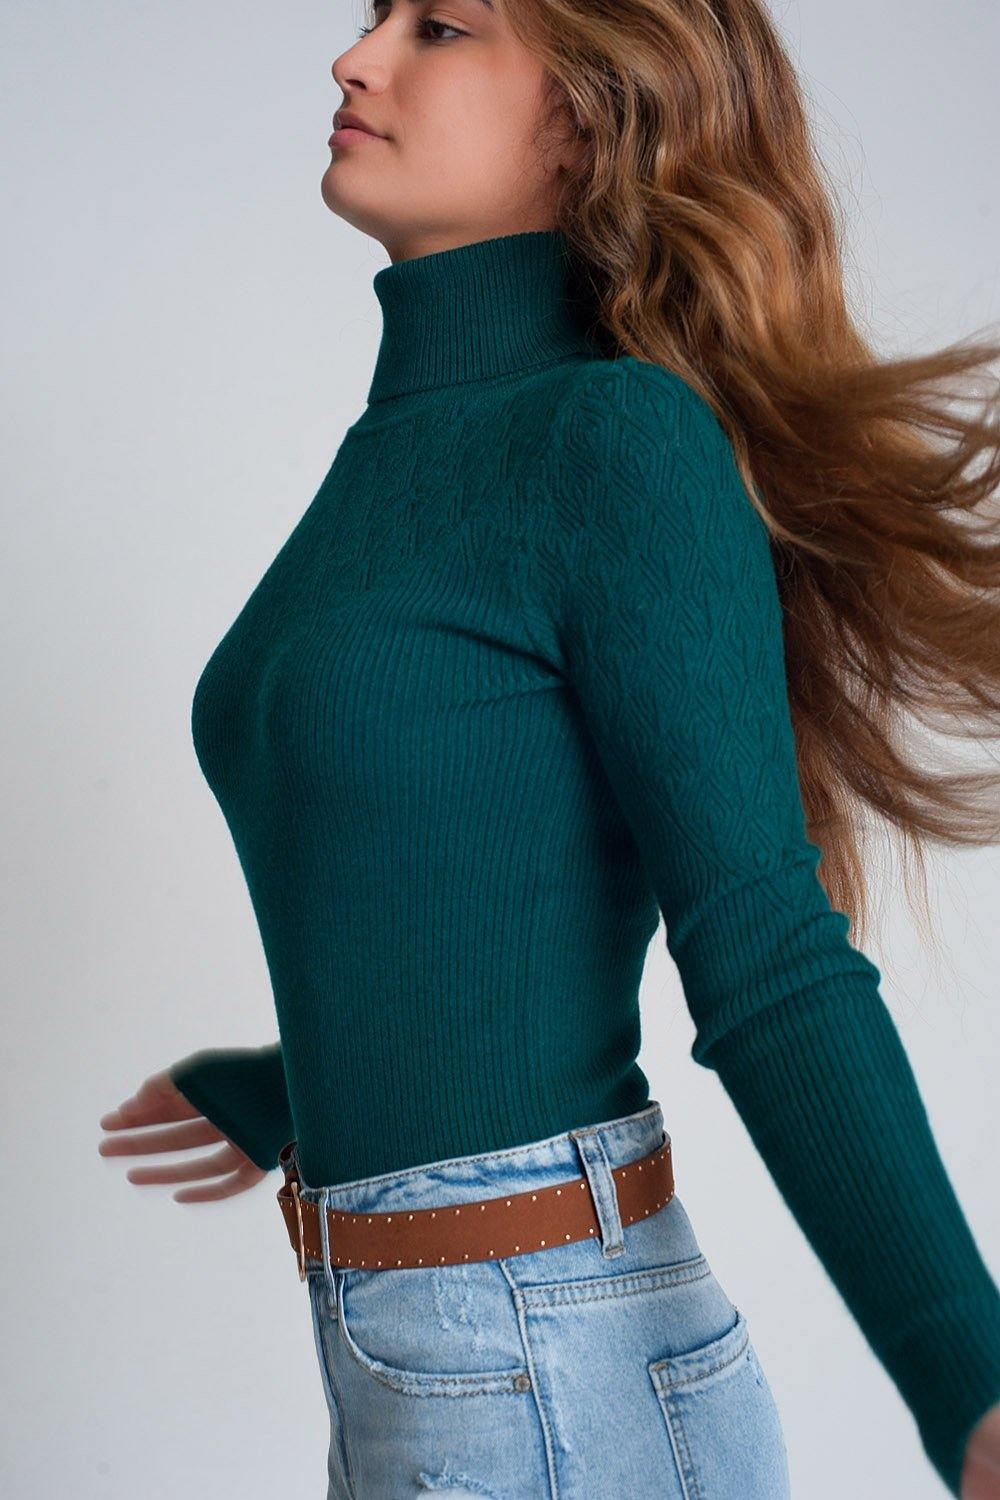 Q2 Soft knitted turtleneck fitted sweater in green